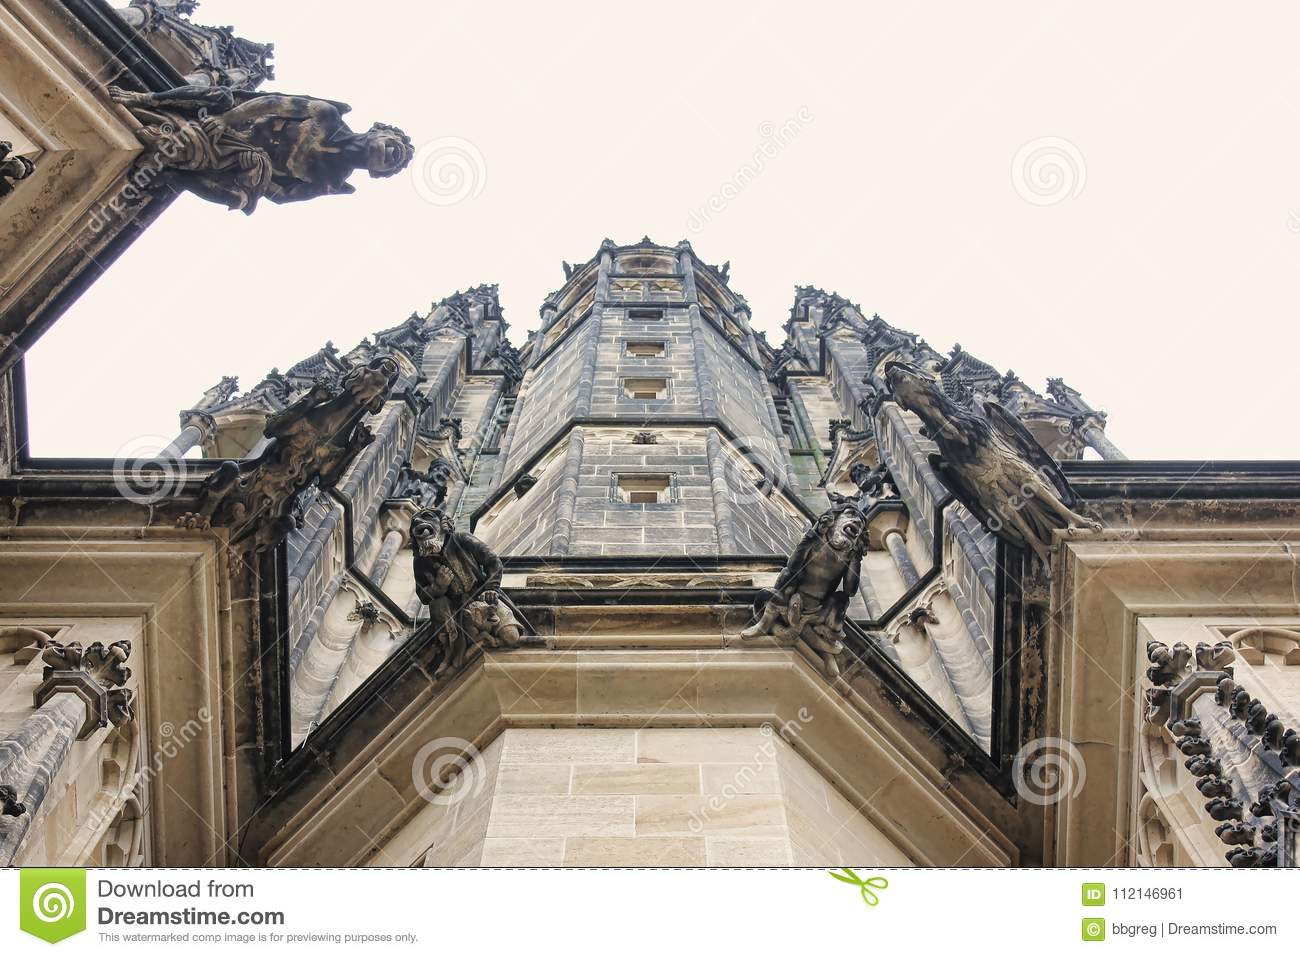 Czech architecture, scary gargoyle sculpture, gothic temple decoration. Medieval art, mystic gargoyle monster statue, St. Vitus Ca